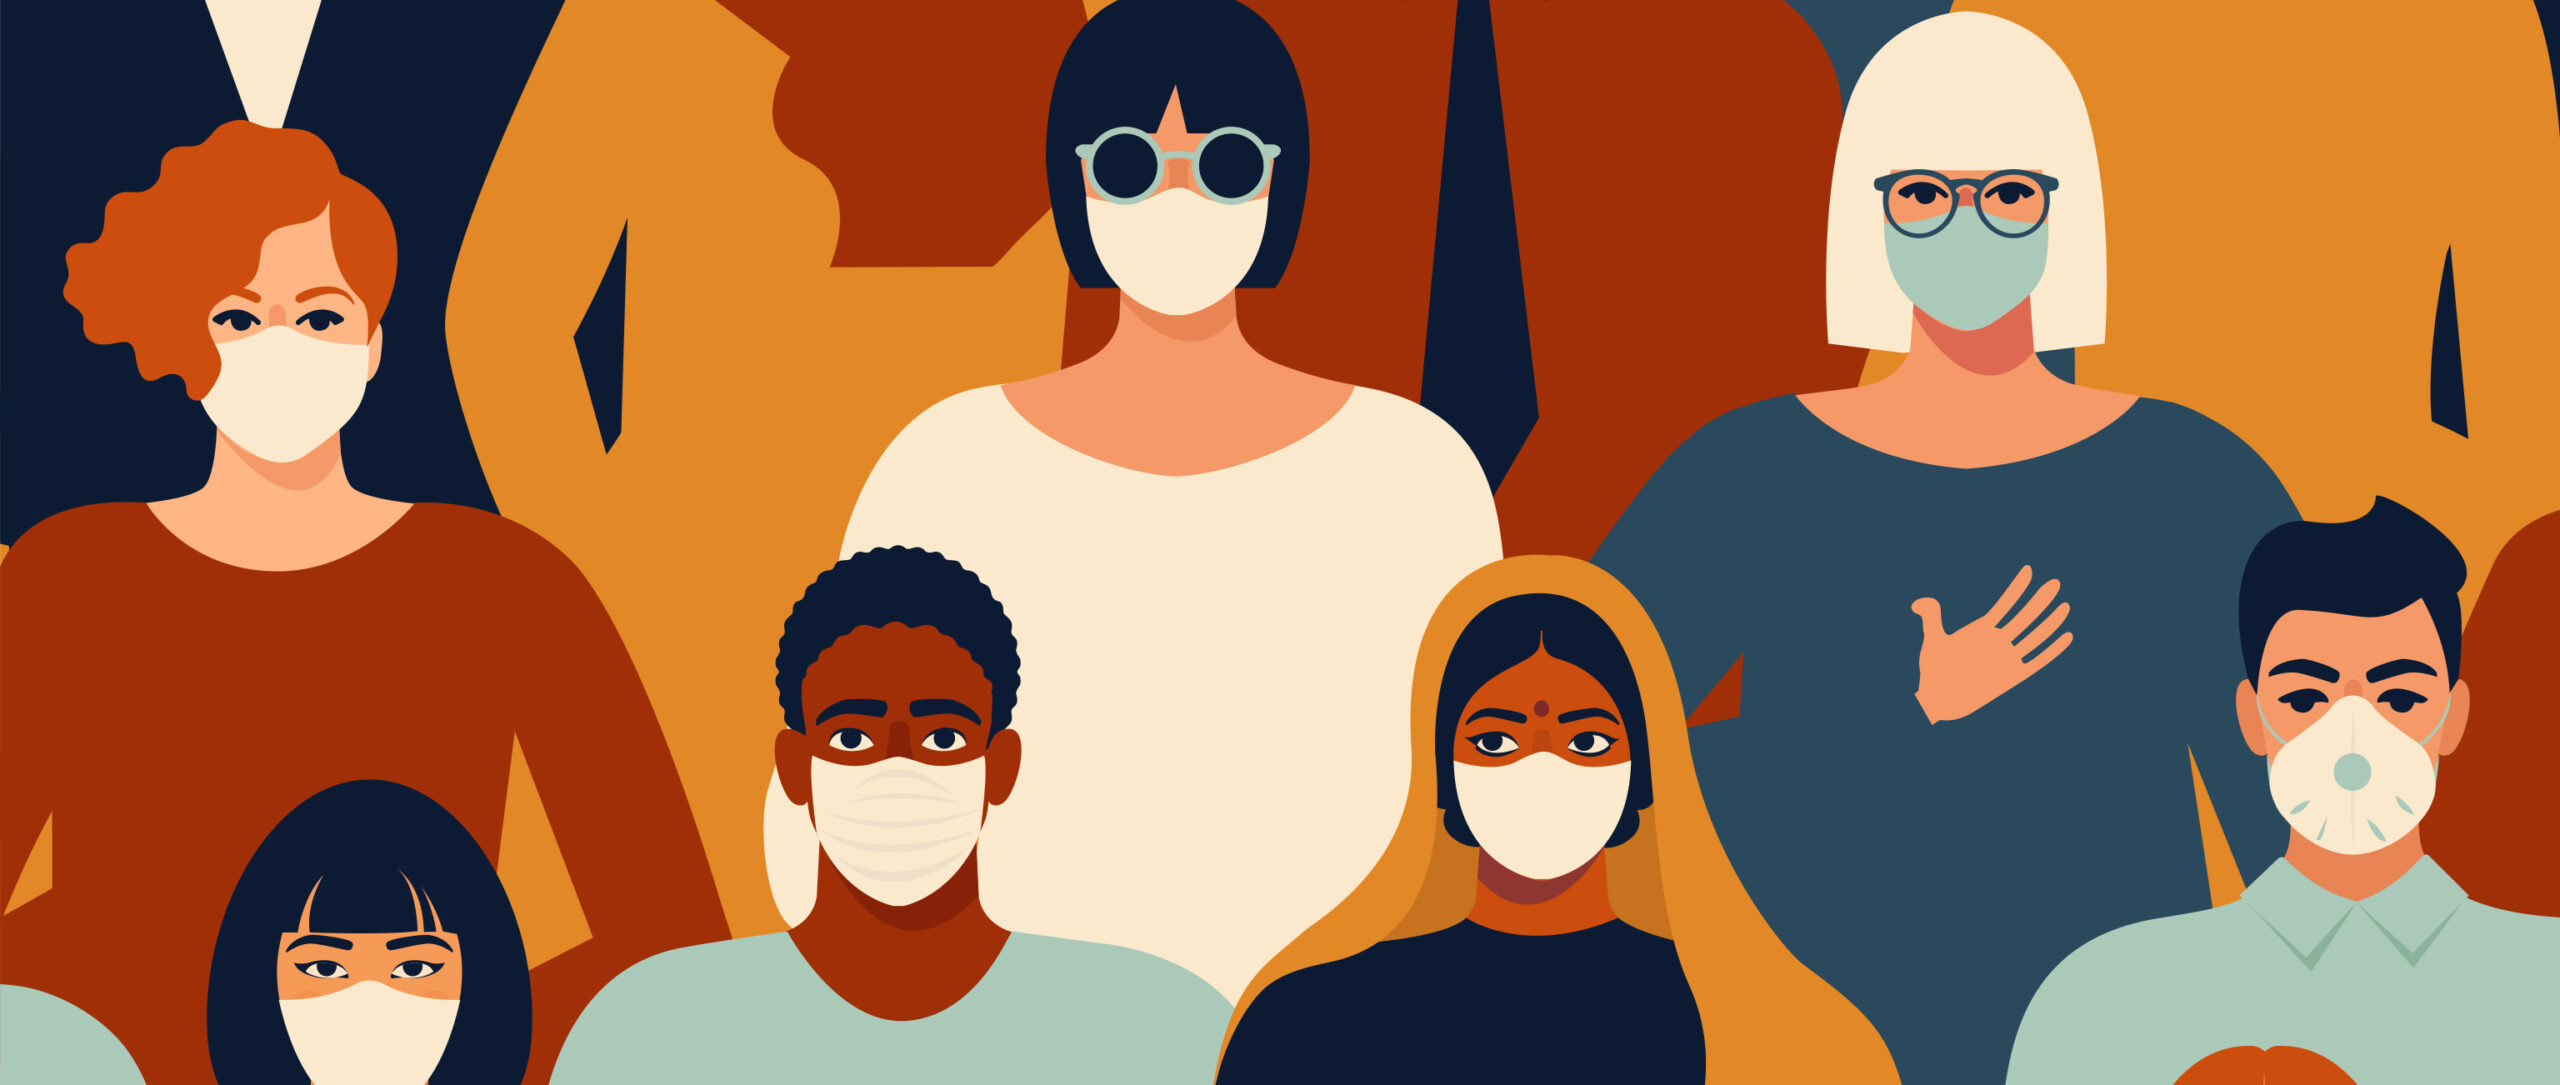 Illustration of a group of people wearing protective masks